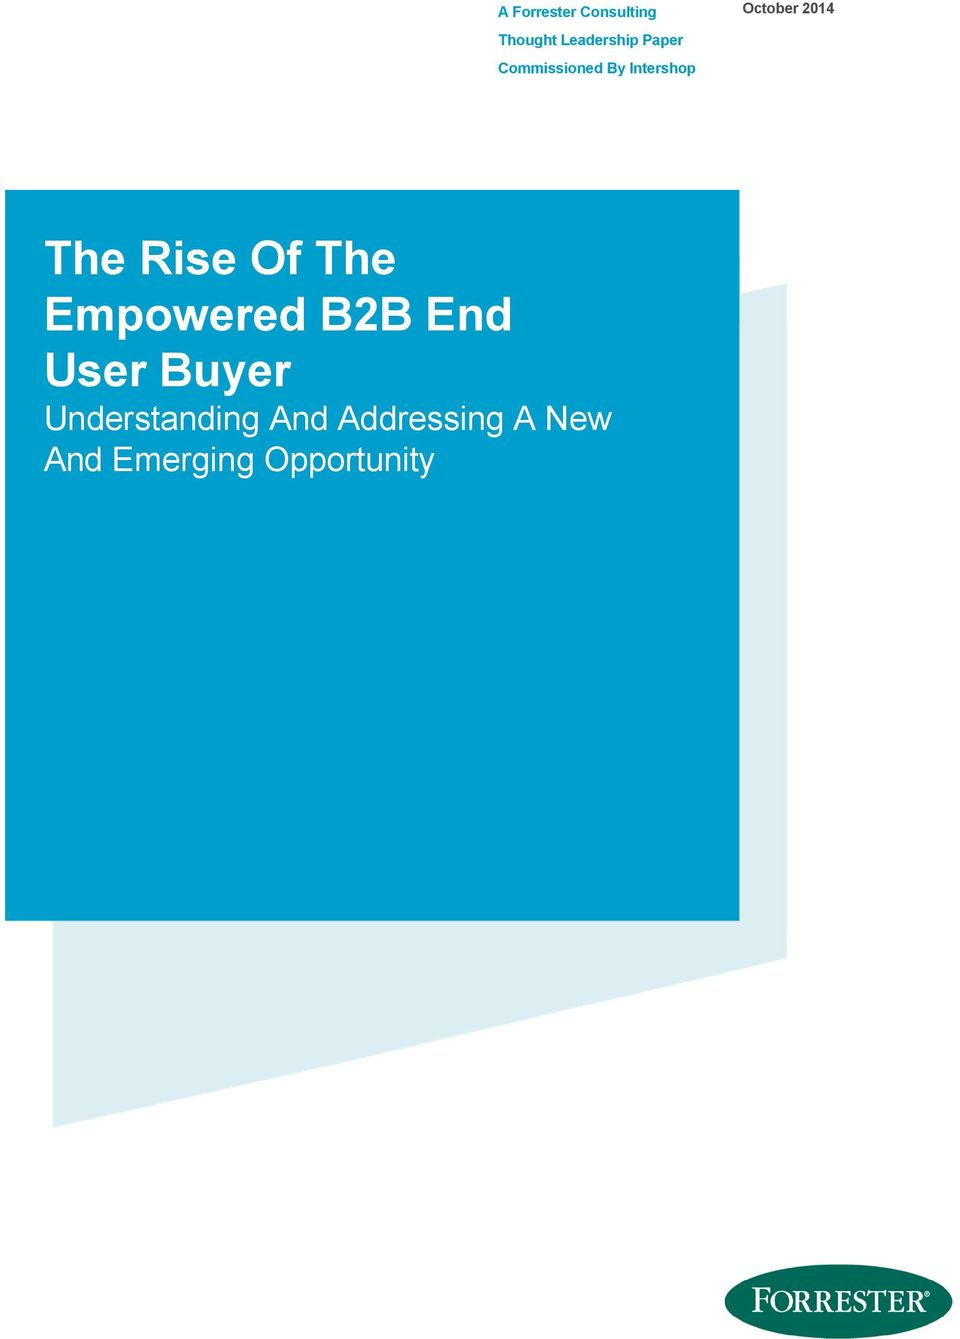 Rise Of The Empowered B2B End User Buyer